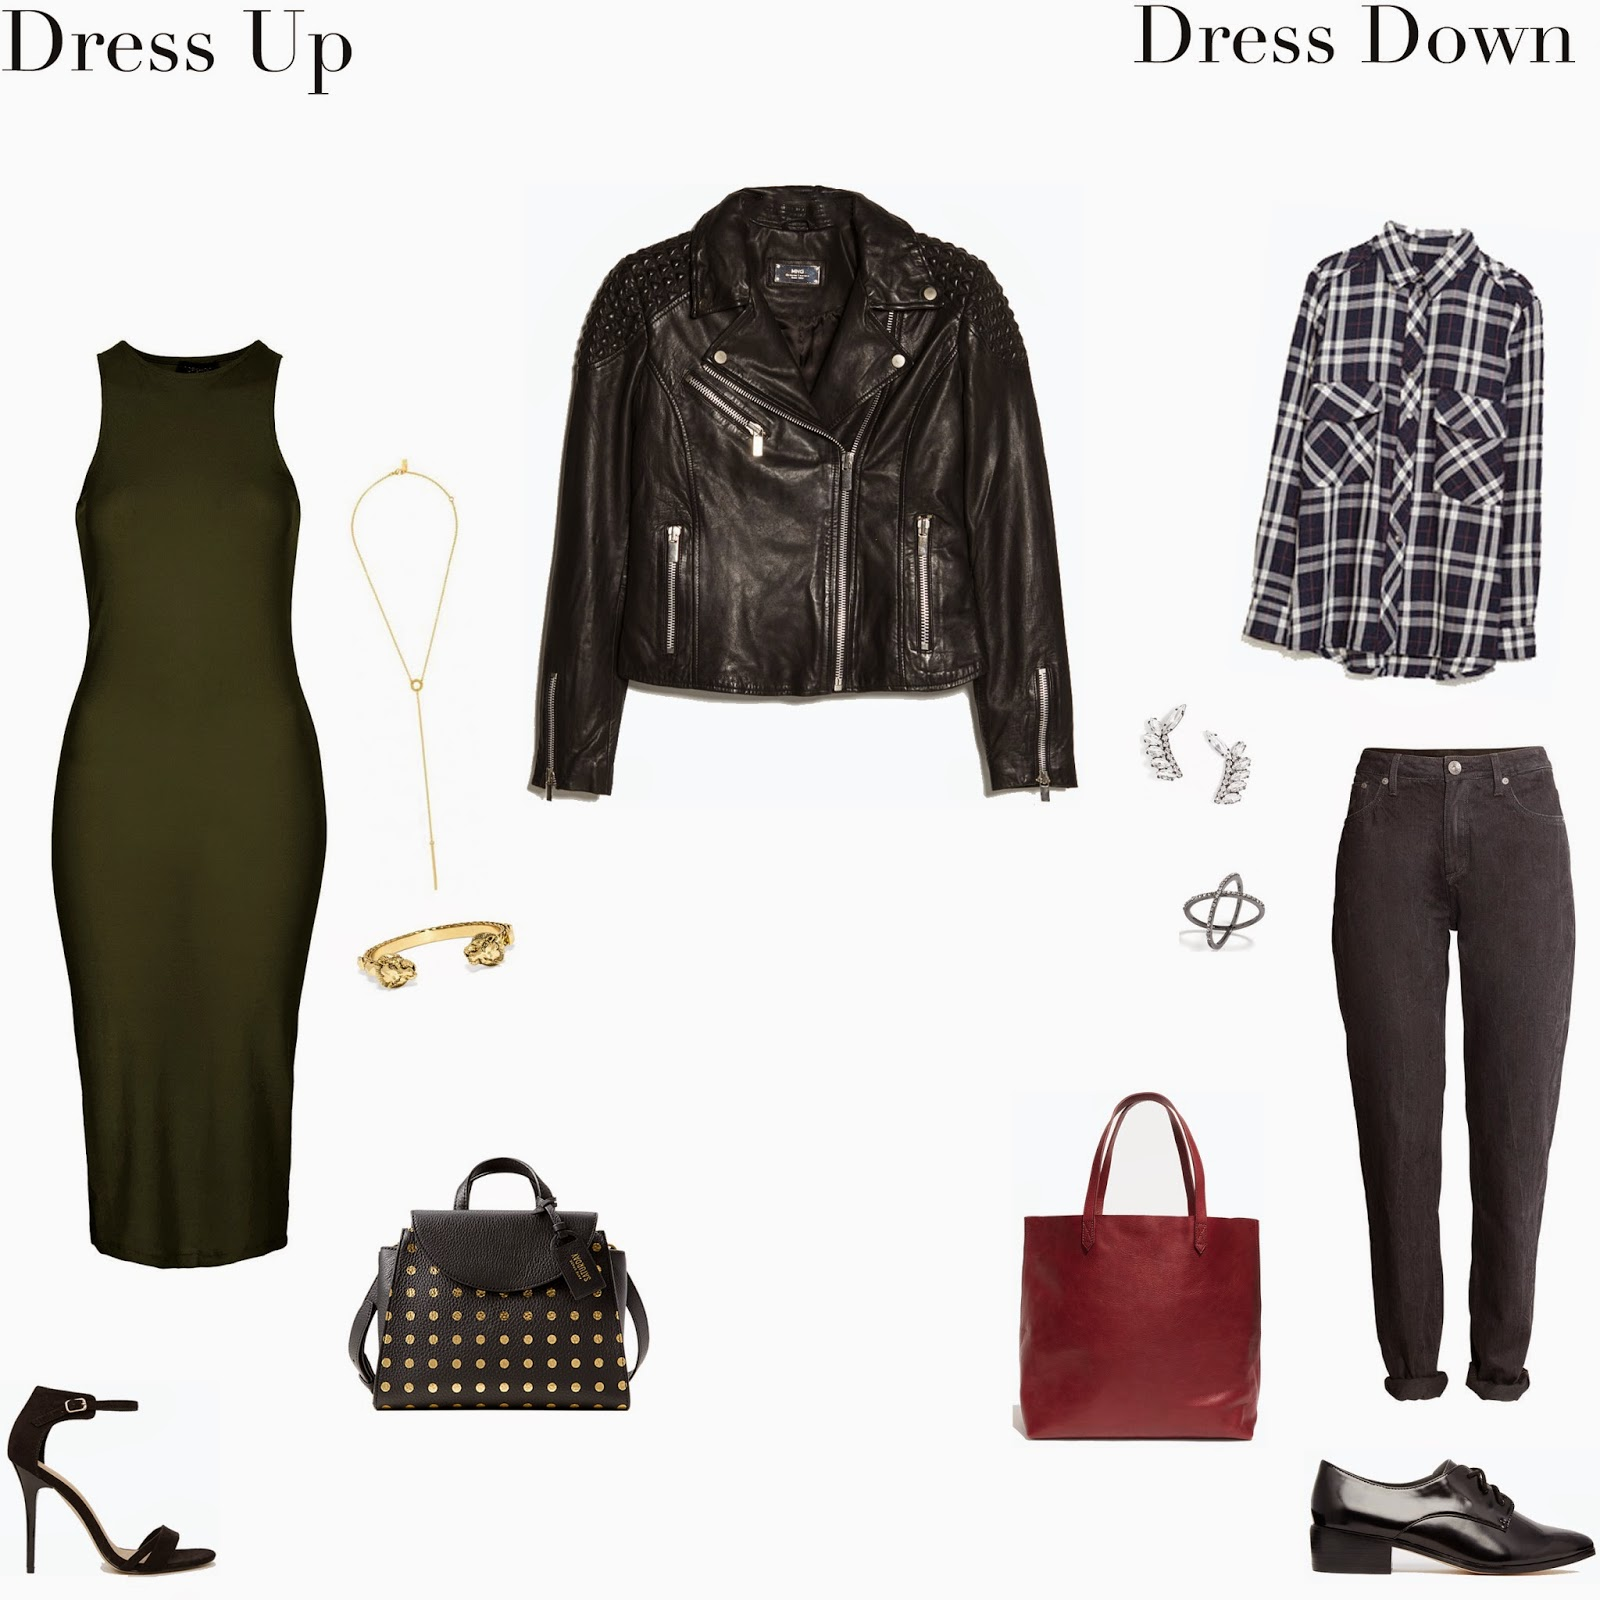 Edie's Closet, Leather Jacket Dress Up/Dress Down